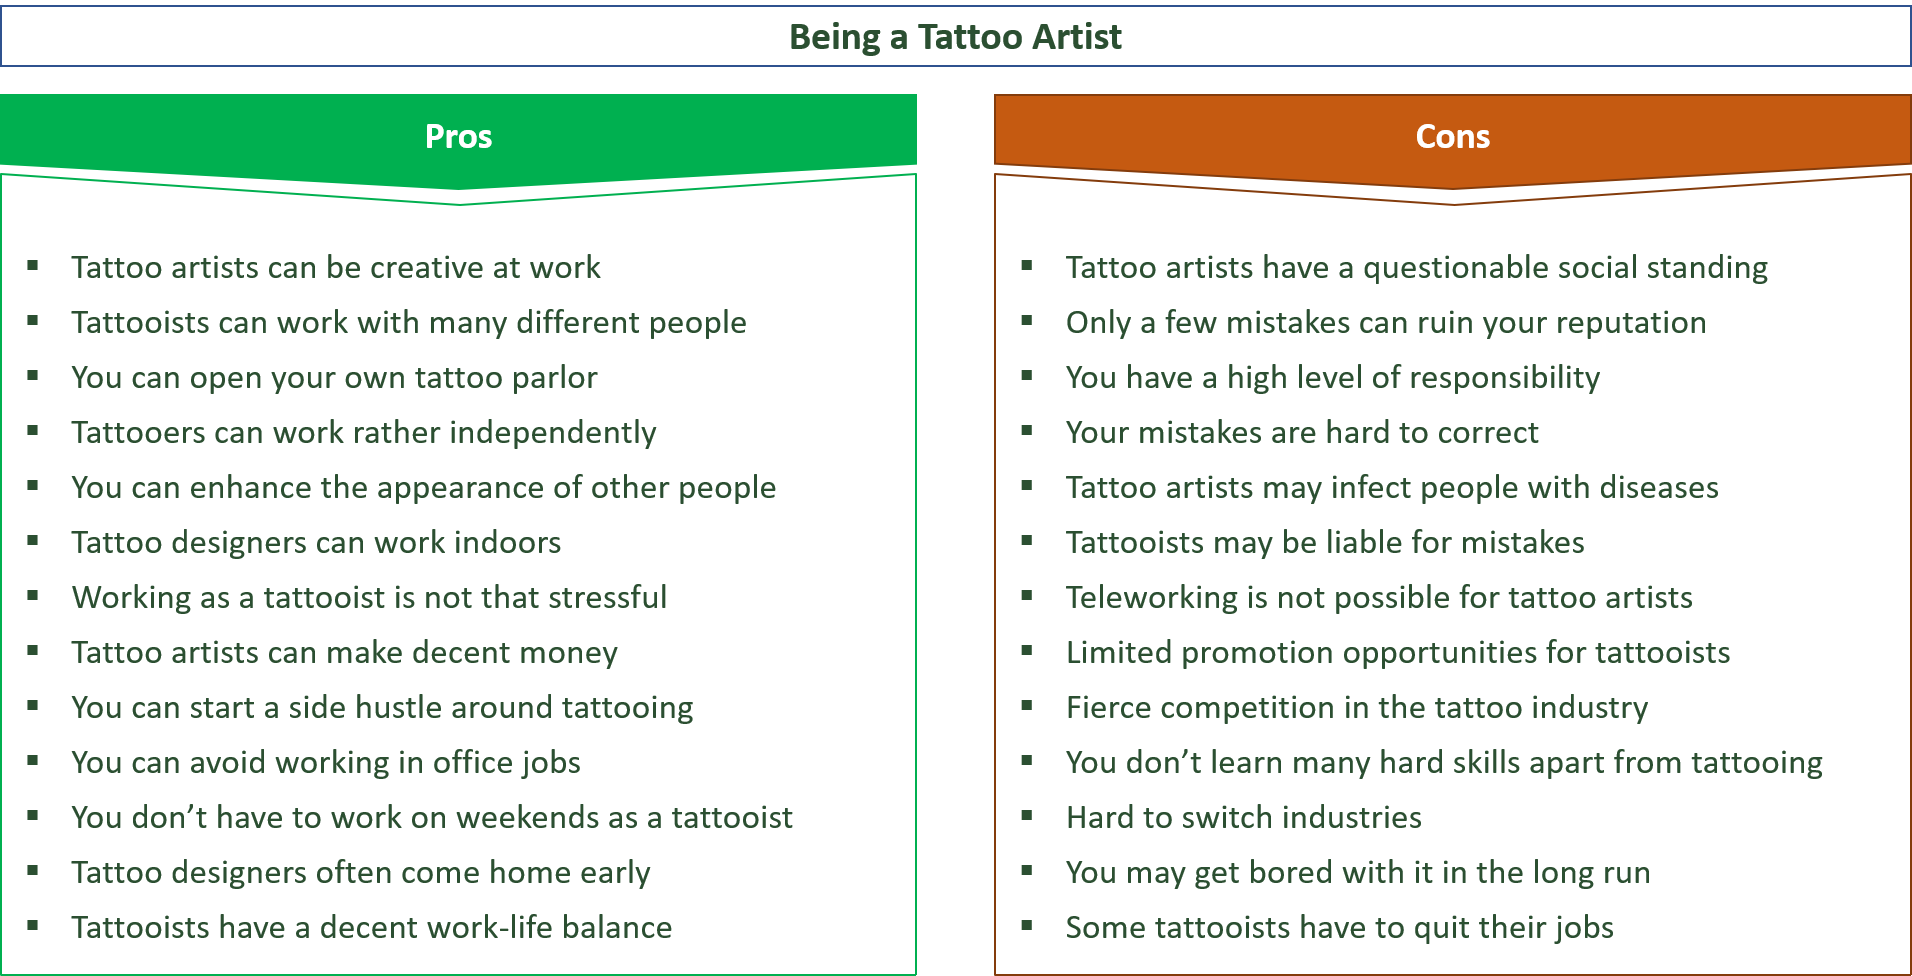 advantages and disadvantages of being a tattoo artist